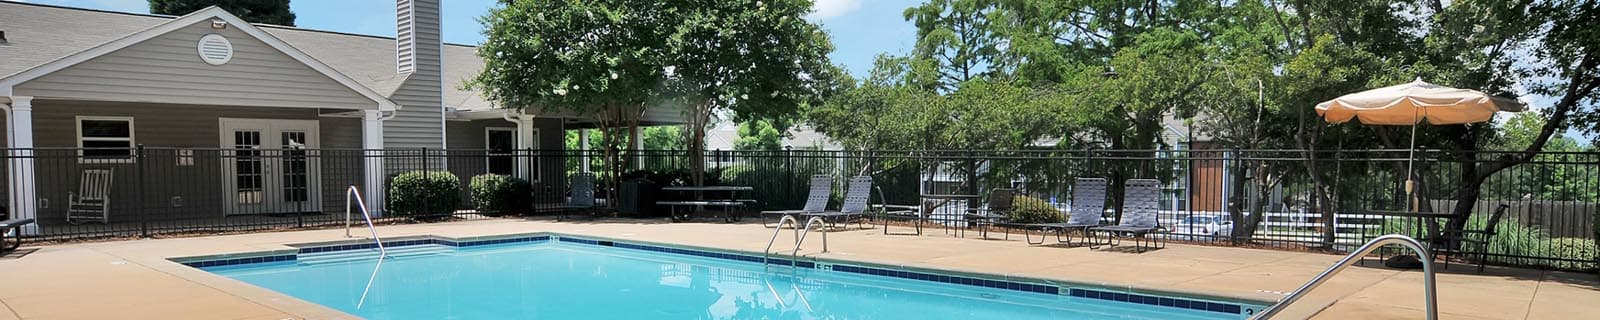 Schedule a tour to view our apartments in Stockbridge, GA